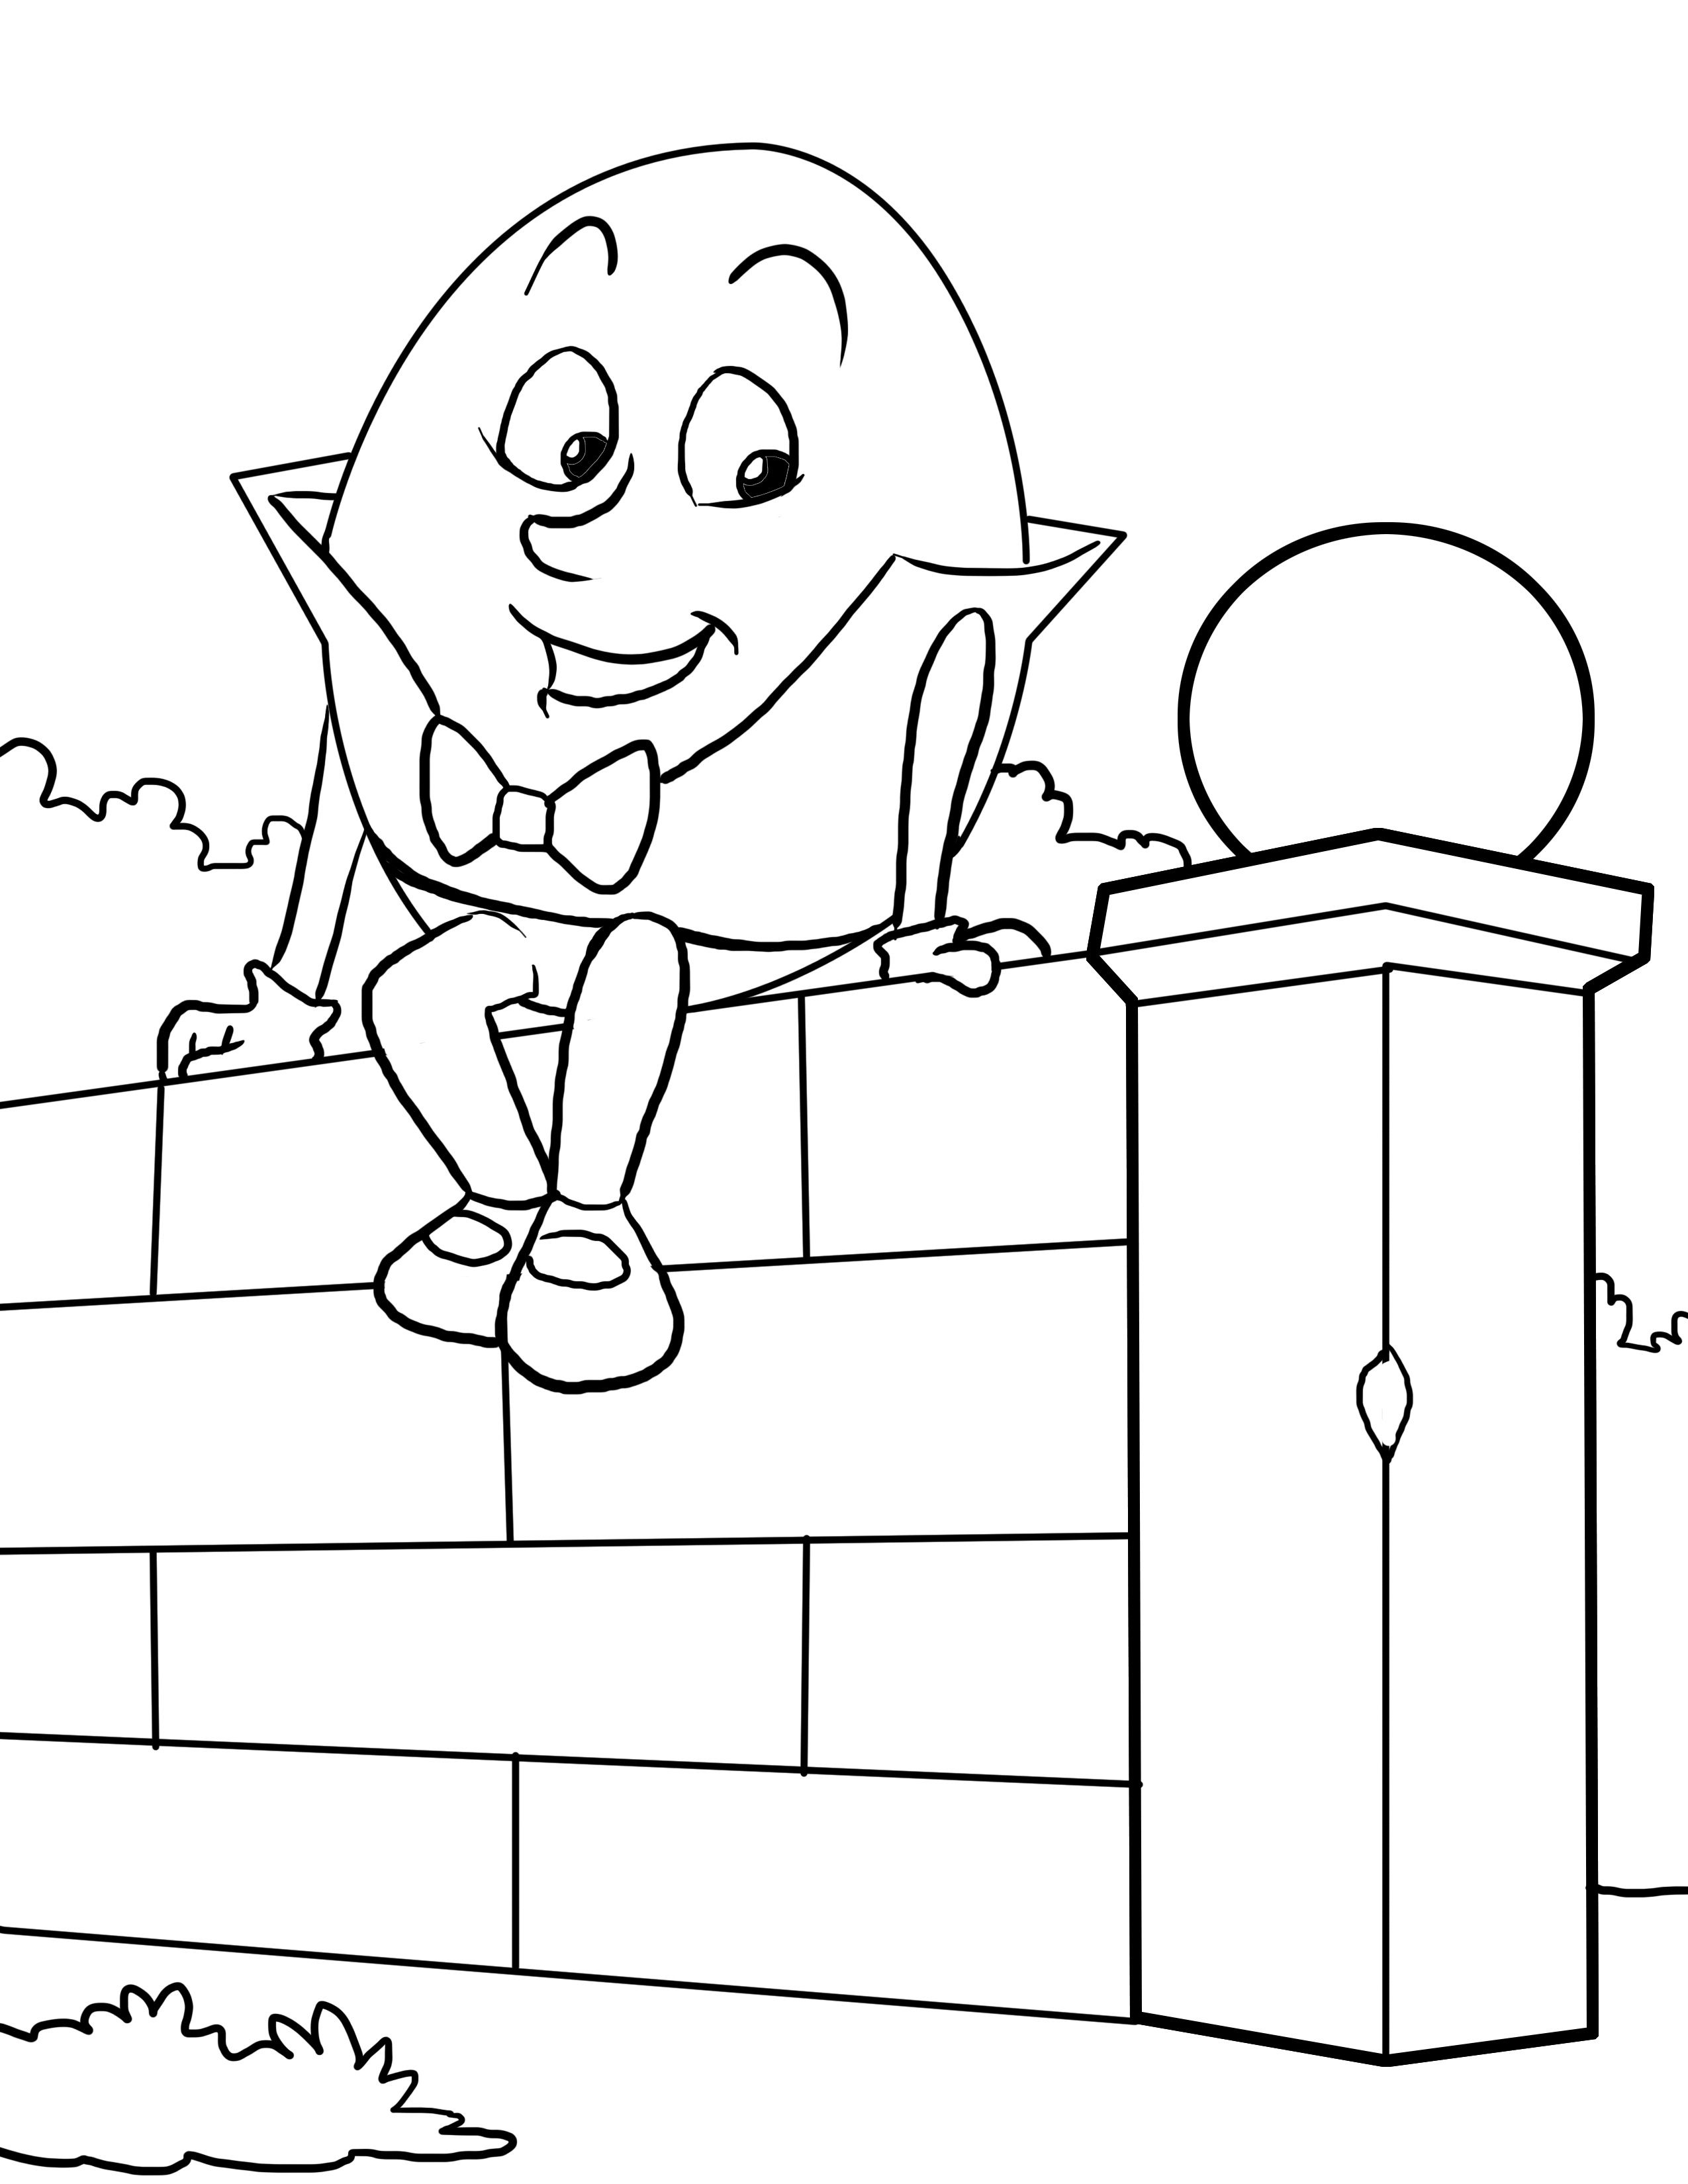 humpty dumpty coloring pages humpty dumpty coloring worksheet for nursery printable humpty coloring dumpty pages